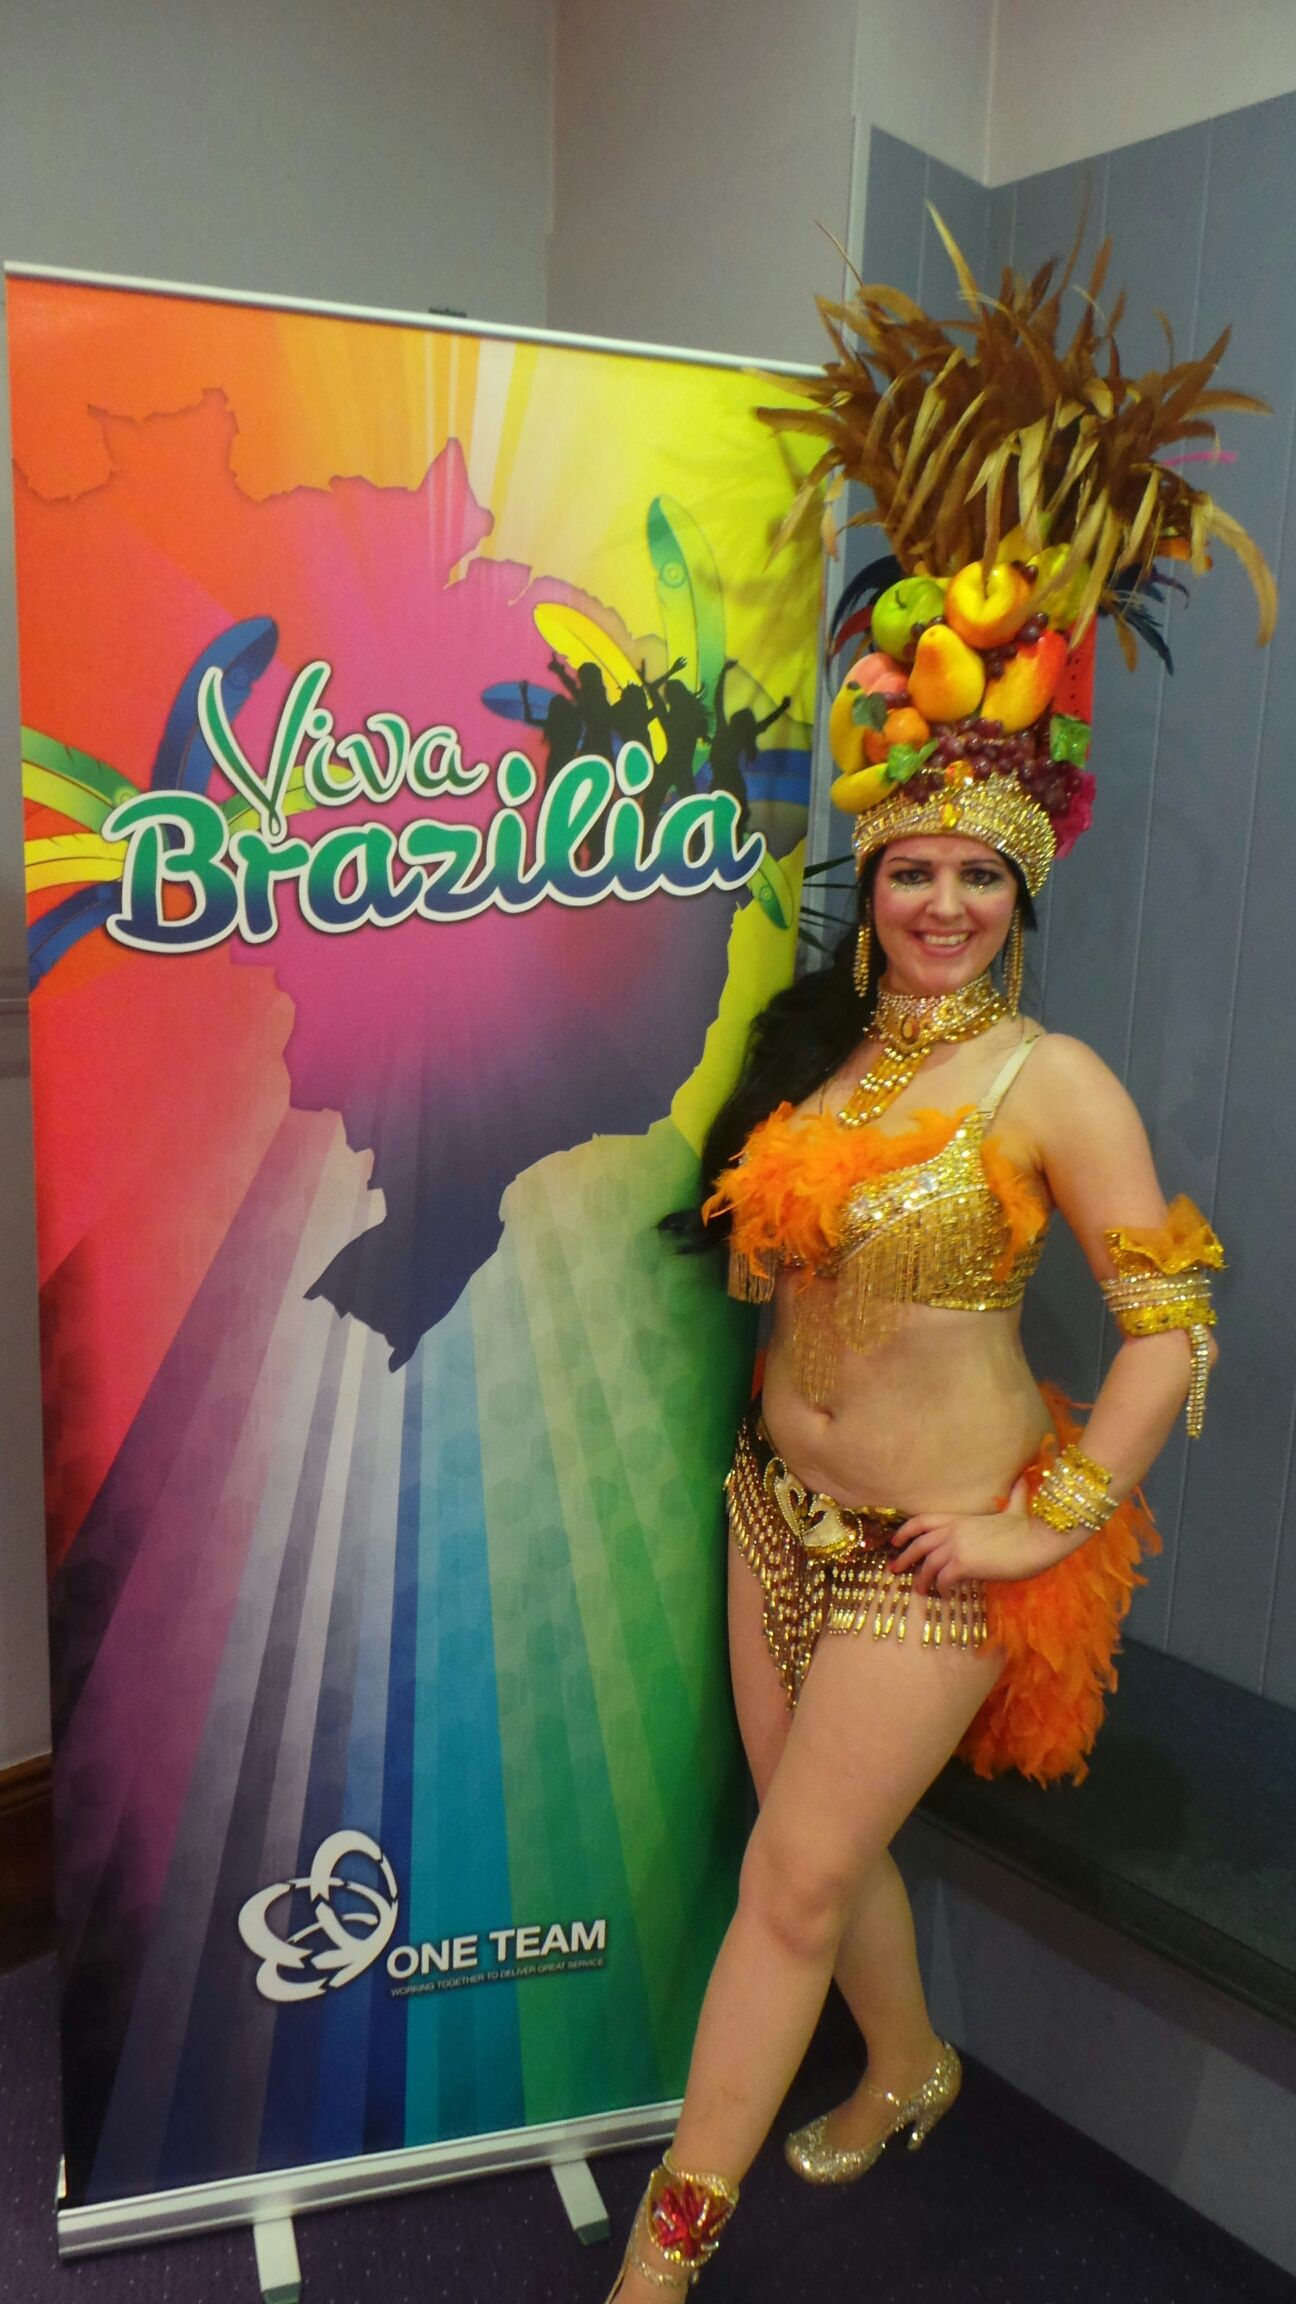 #CarmenMiranda #fruit #fruitheaddress #Bahia #SambaLivreLiverpool #Brazilian #samba #dancers #Brazil #Brasil #dance #performers #performance #entertainment #entertainers #show #WorldCup #football #soccer #Brazil2014 #RioCarnival #showgirls #hostesses #costumes #feathers #headdresses #Liverpool #Manchester #NorthWest #dancersforhire #hiredancers www.sambalivre.co.uk #bars #restaurants #clubs #festivals #parties #weddings #events #corporateevents #promotions